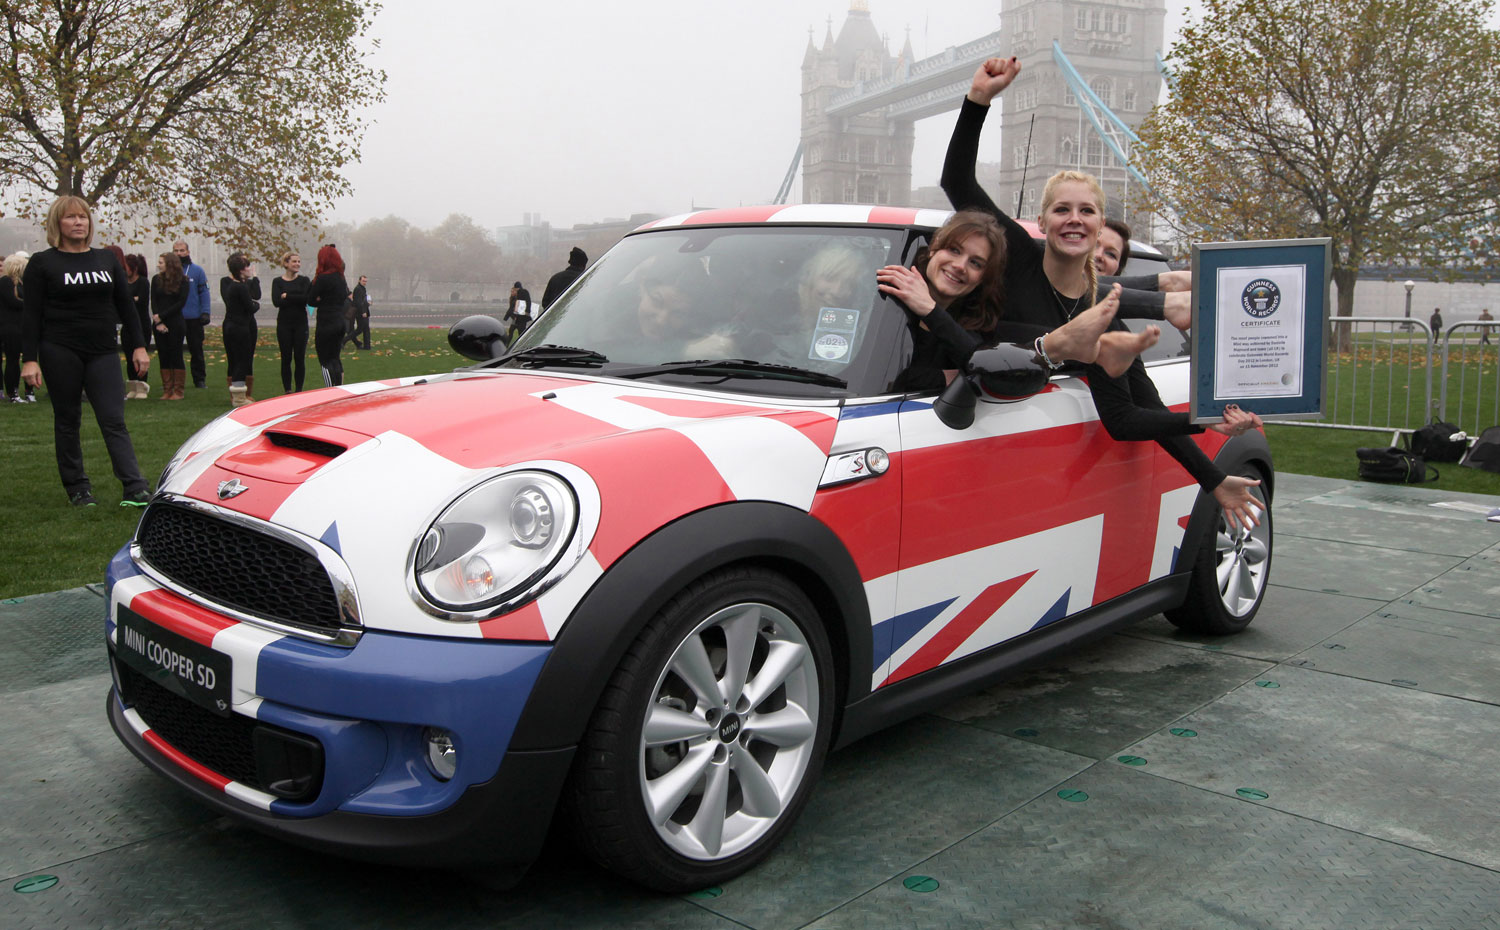 2012 Mini Hatchback Breaks Guinness World Record For Most People Inside1